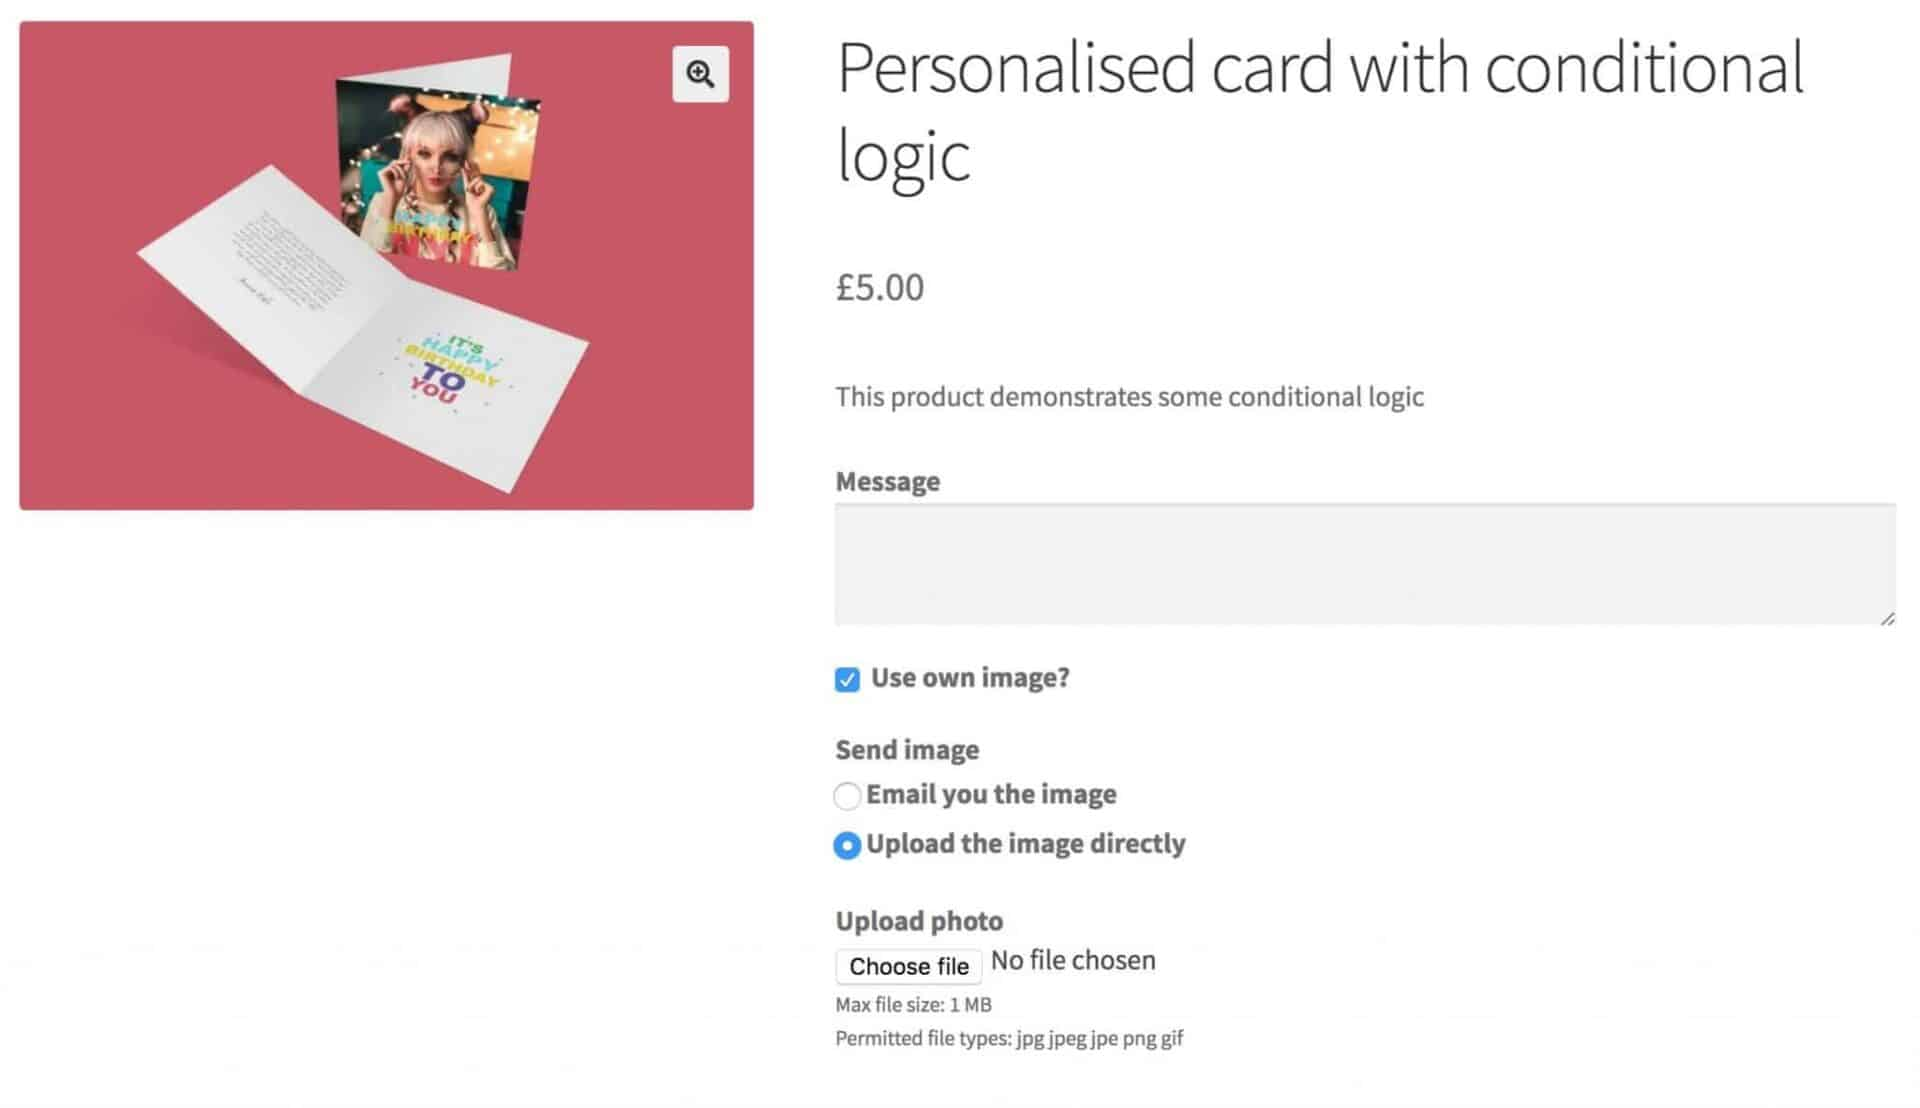 Personalised card with conditional logic